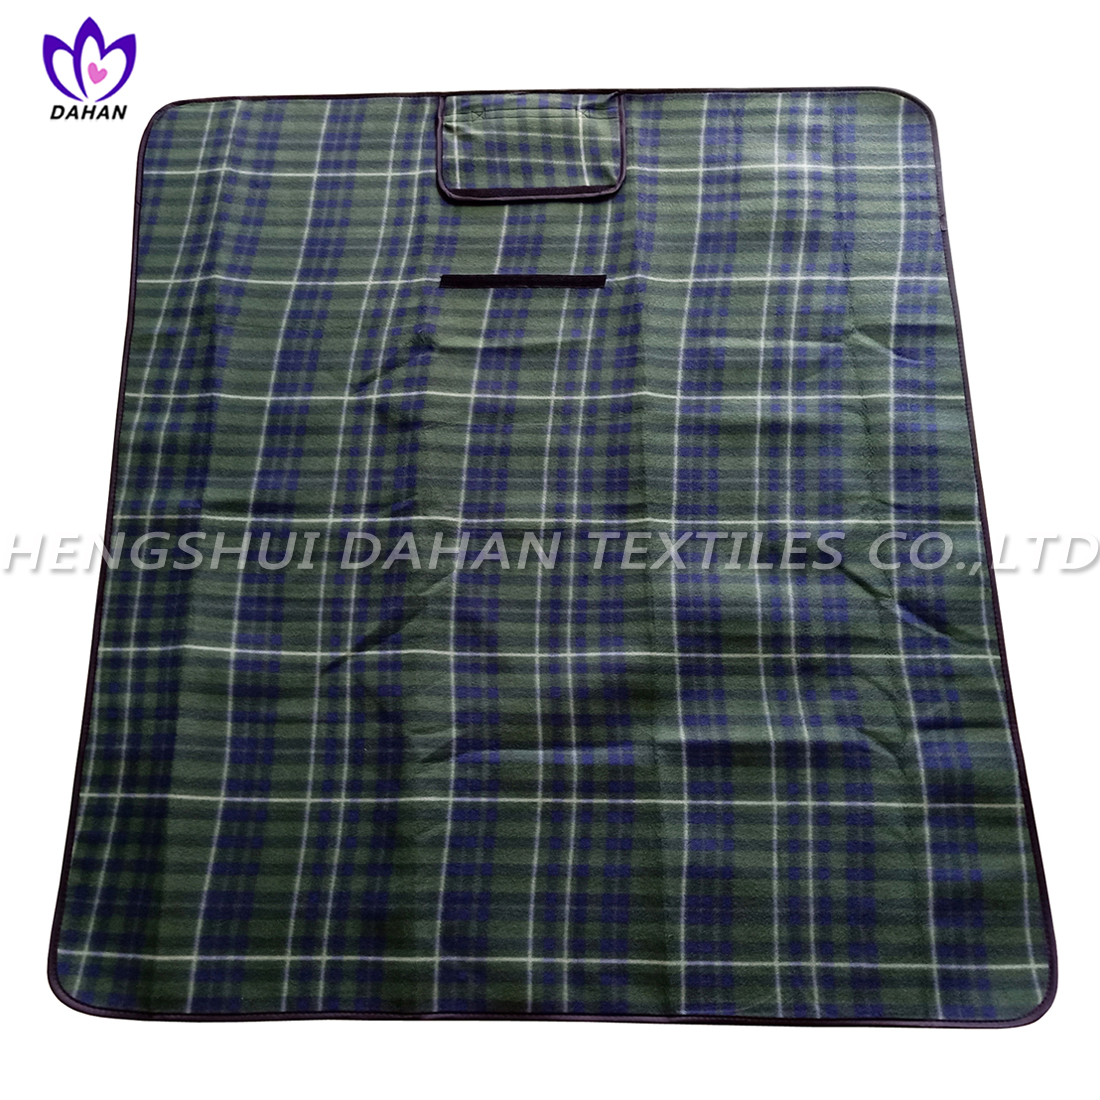 Picnic blanket waterproof picnic mat with printing.PM15